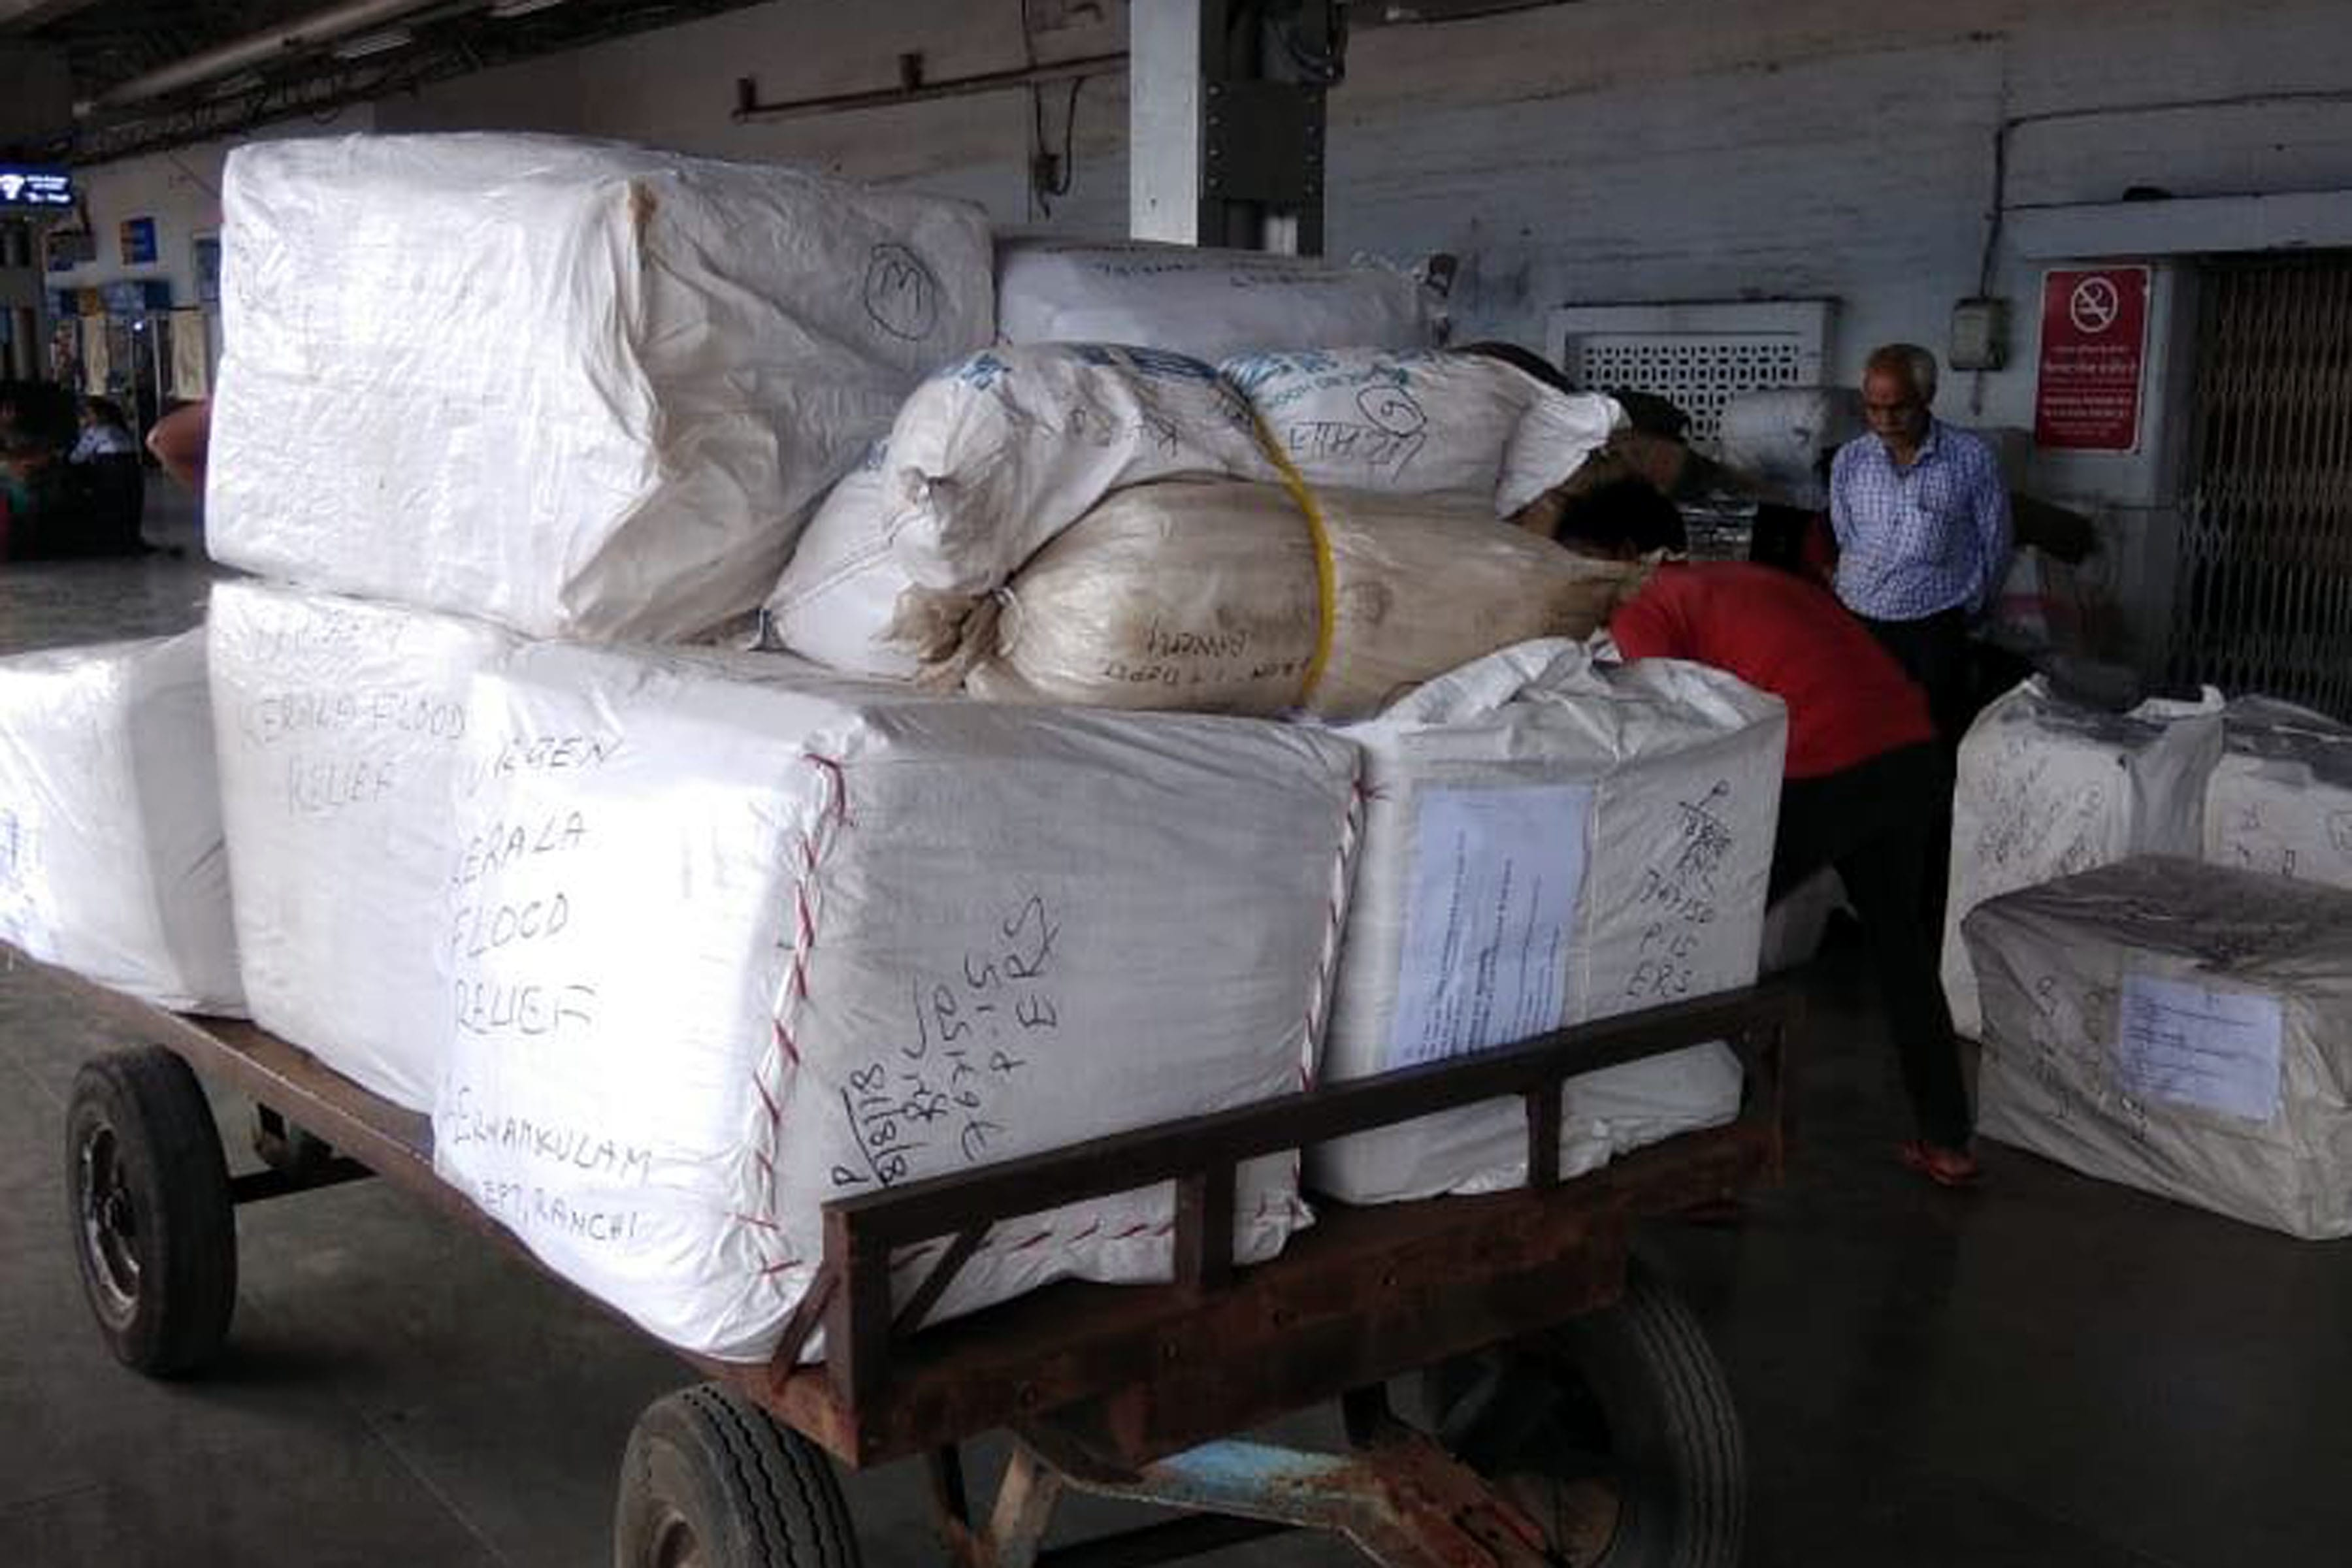 <p>Approximately Rs. 3 lakhs worth articles sent for relief in Kerala by the Income Tax department under Chief commissioner of income tax Ranchi on Saturday<br /> </p>